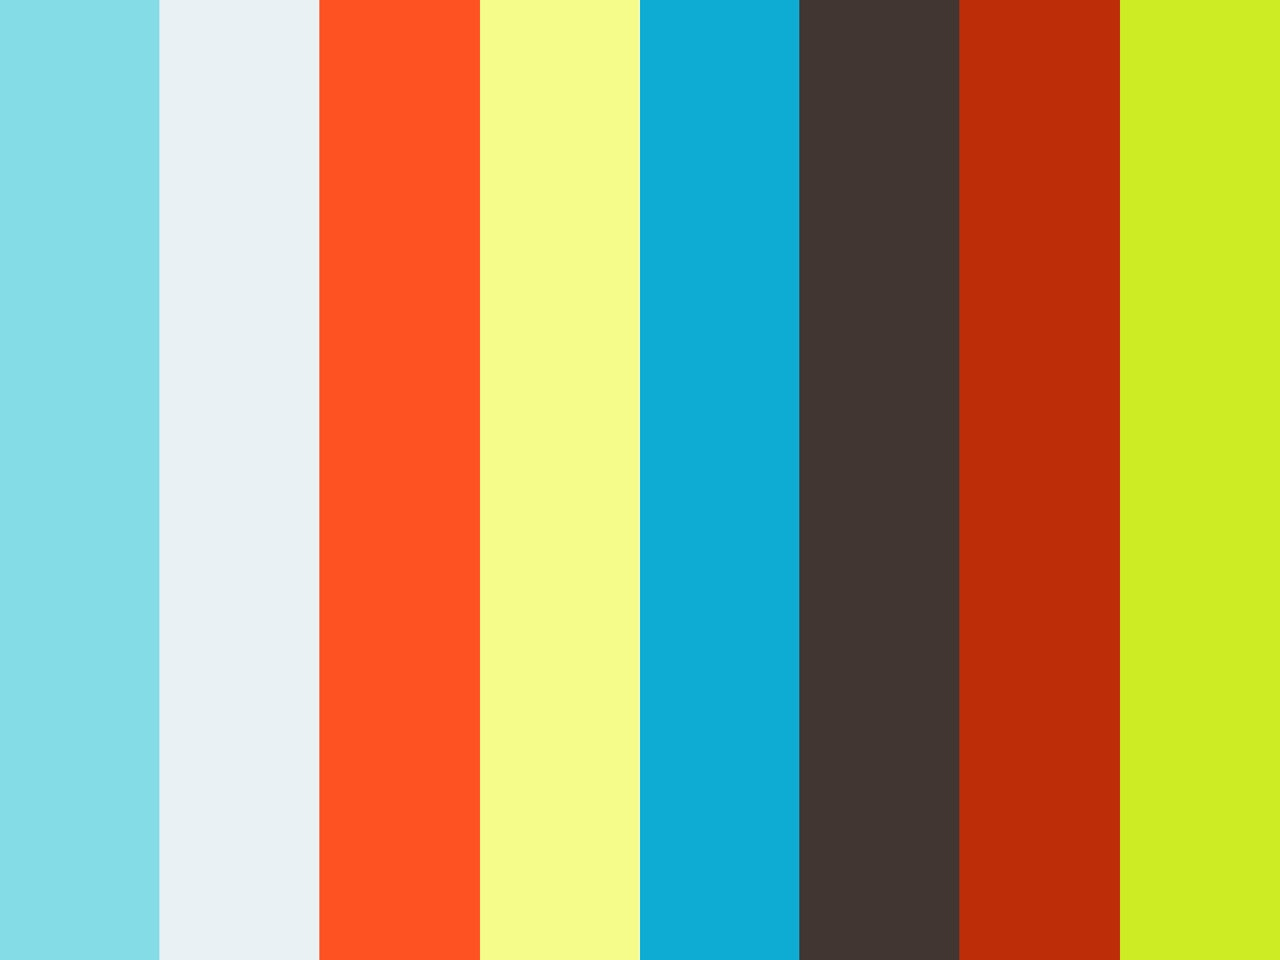 Skate off Paris 2005